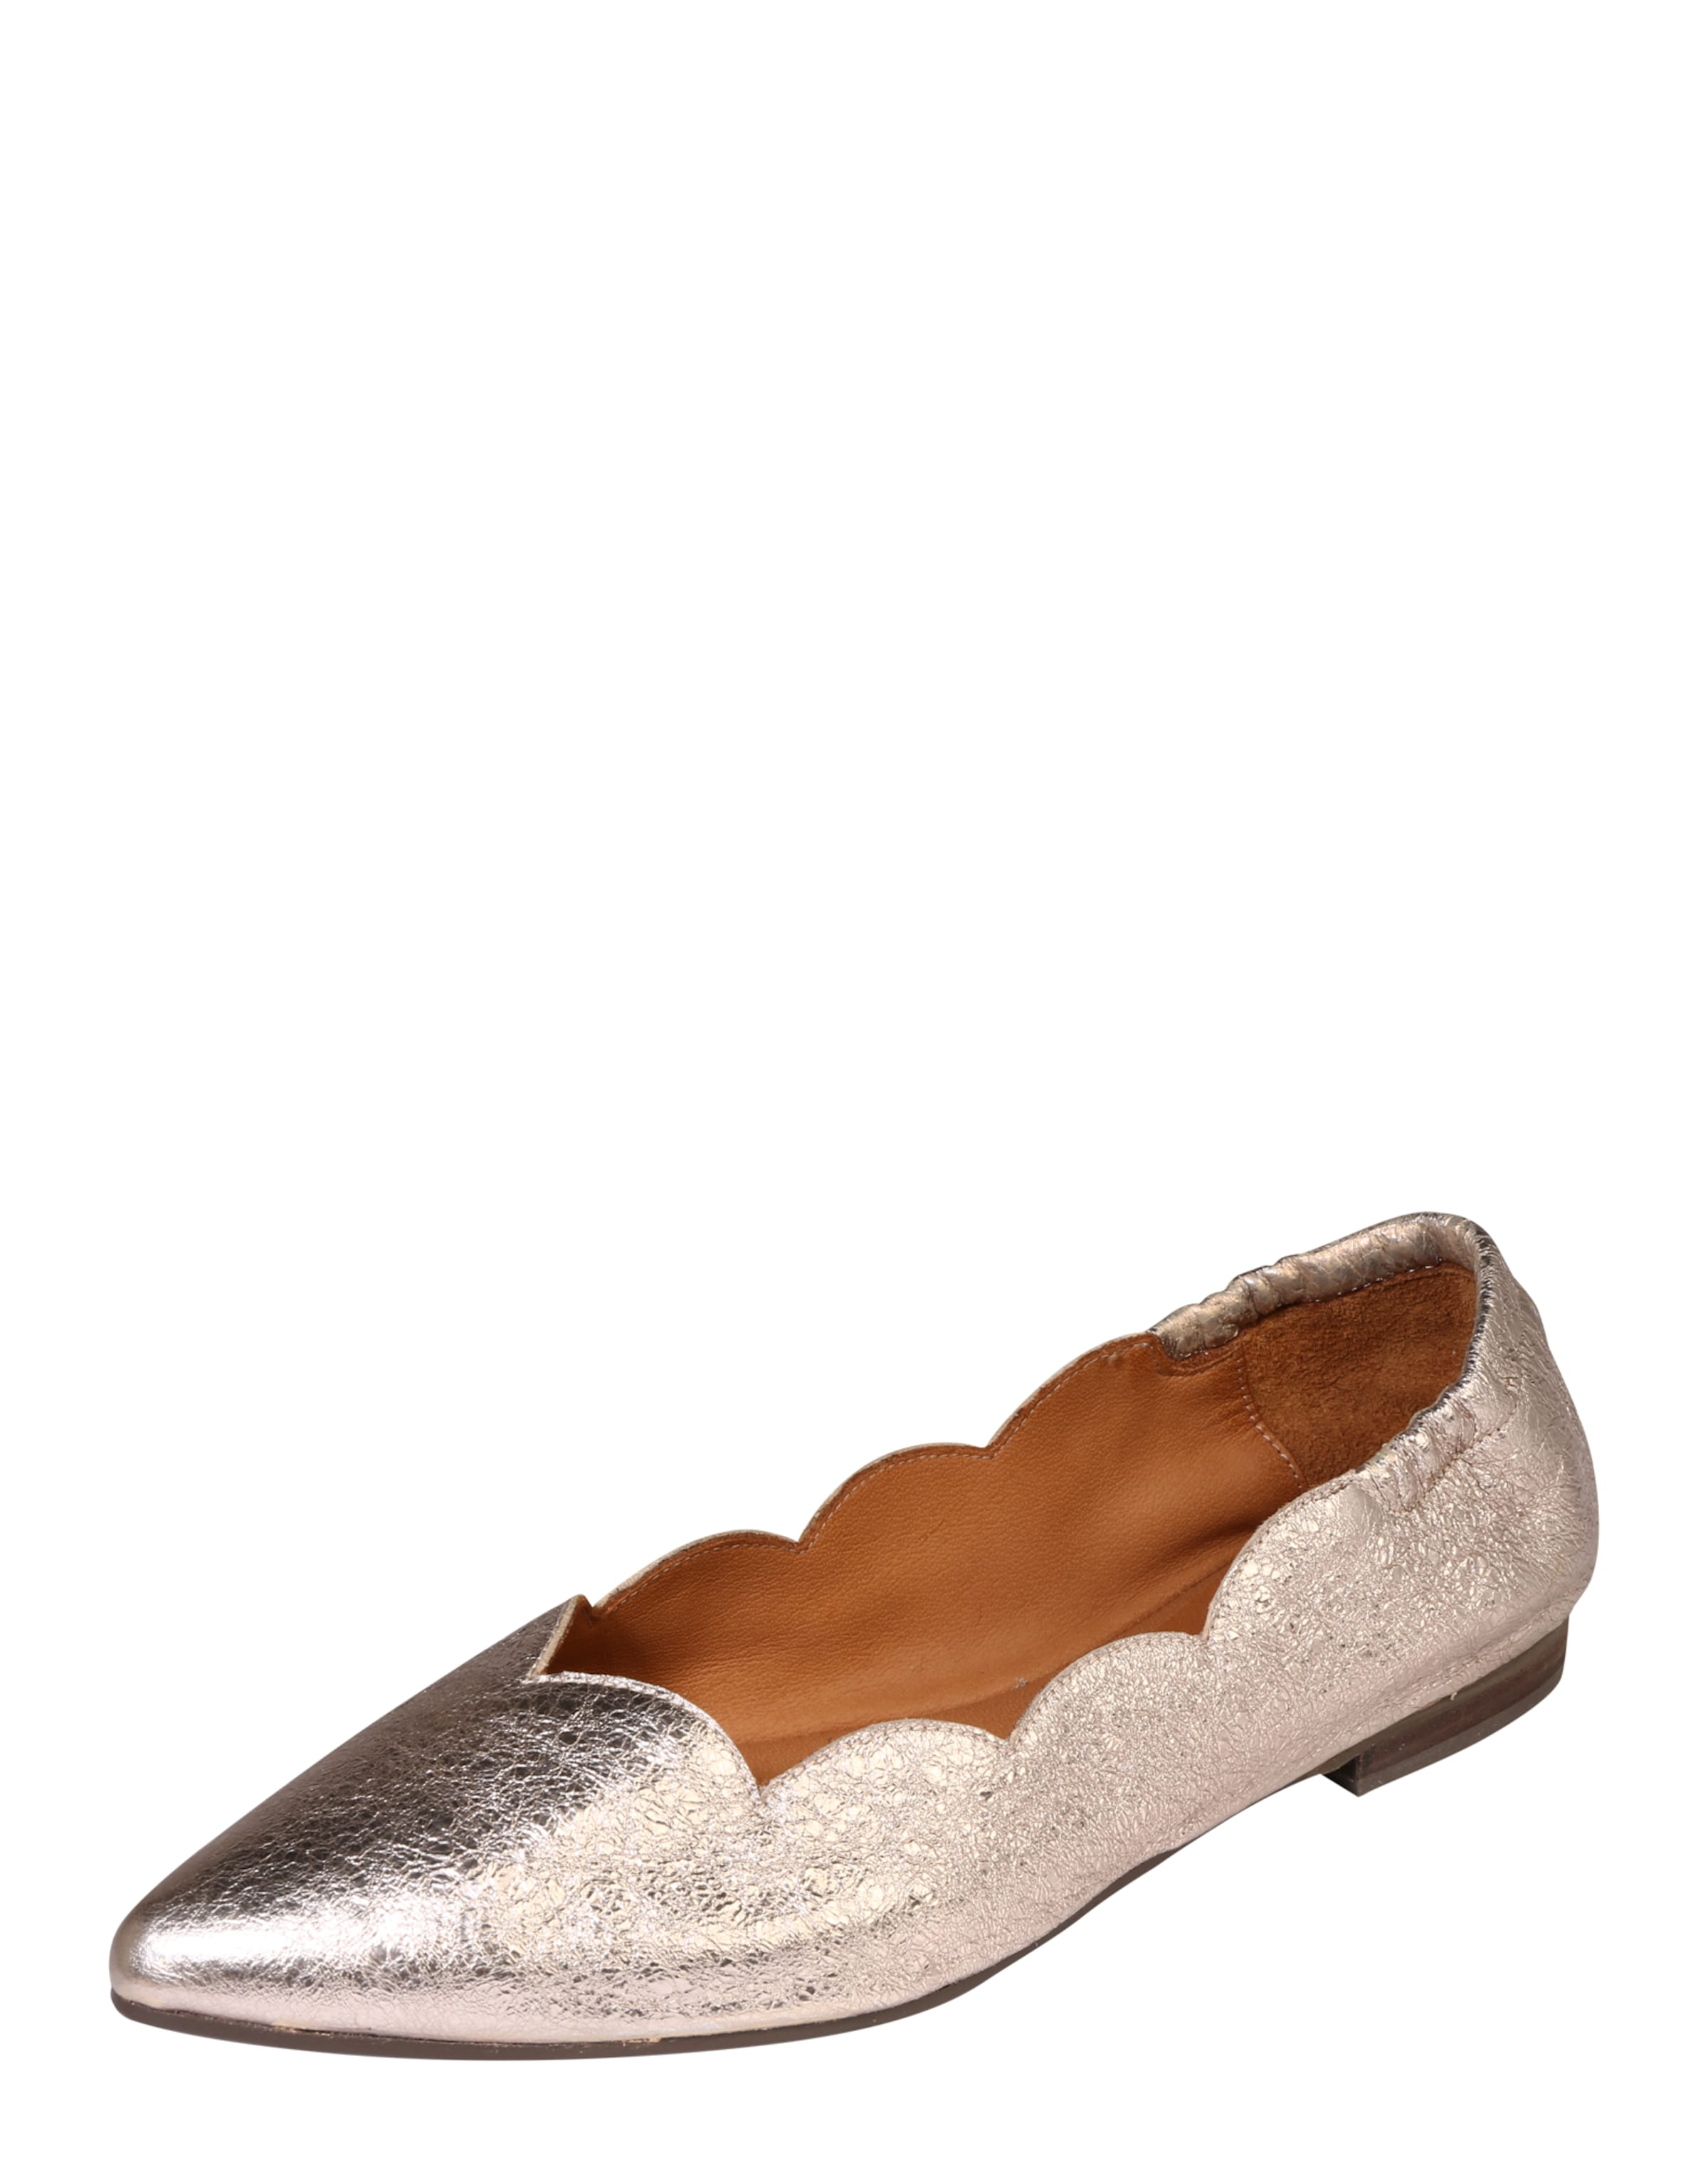 Billi Bi | Ballerina 'Wave' in Metallic-Optik Schuhe Gut Gut Gut getragene Schuhe 454752